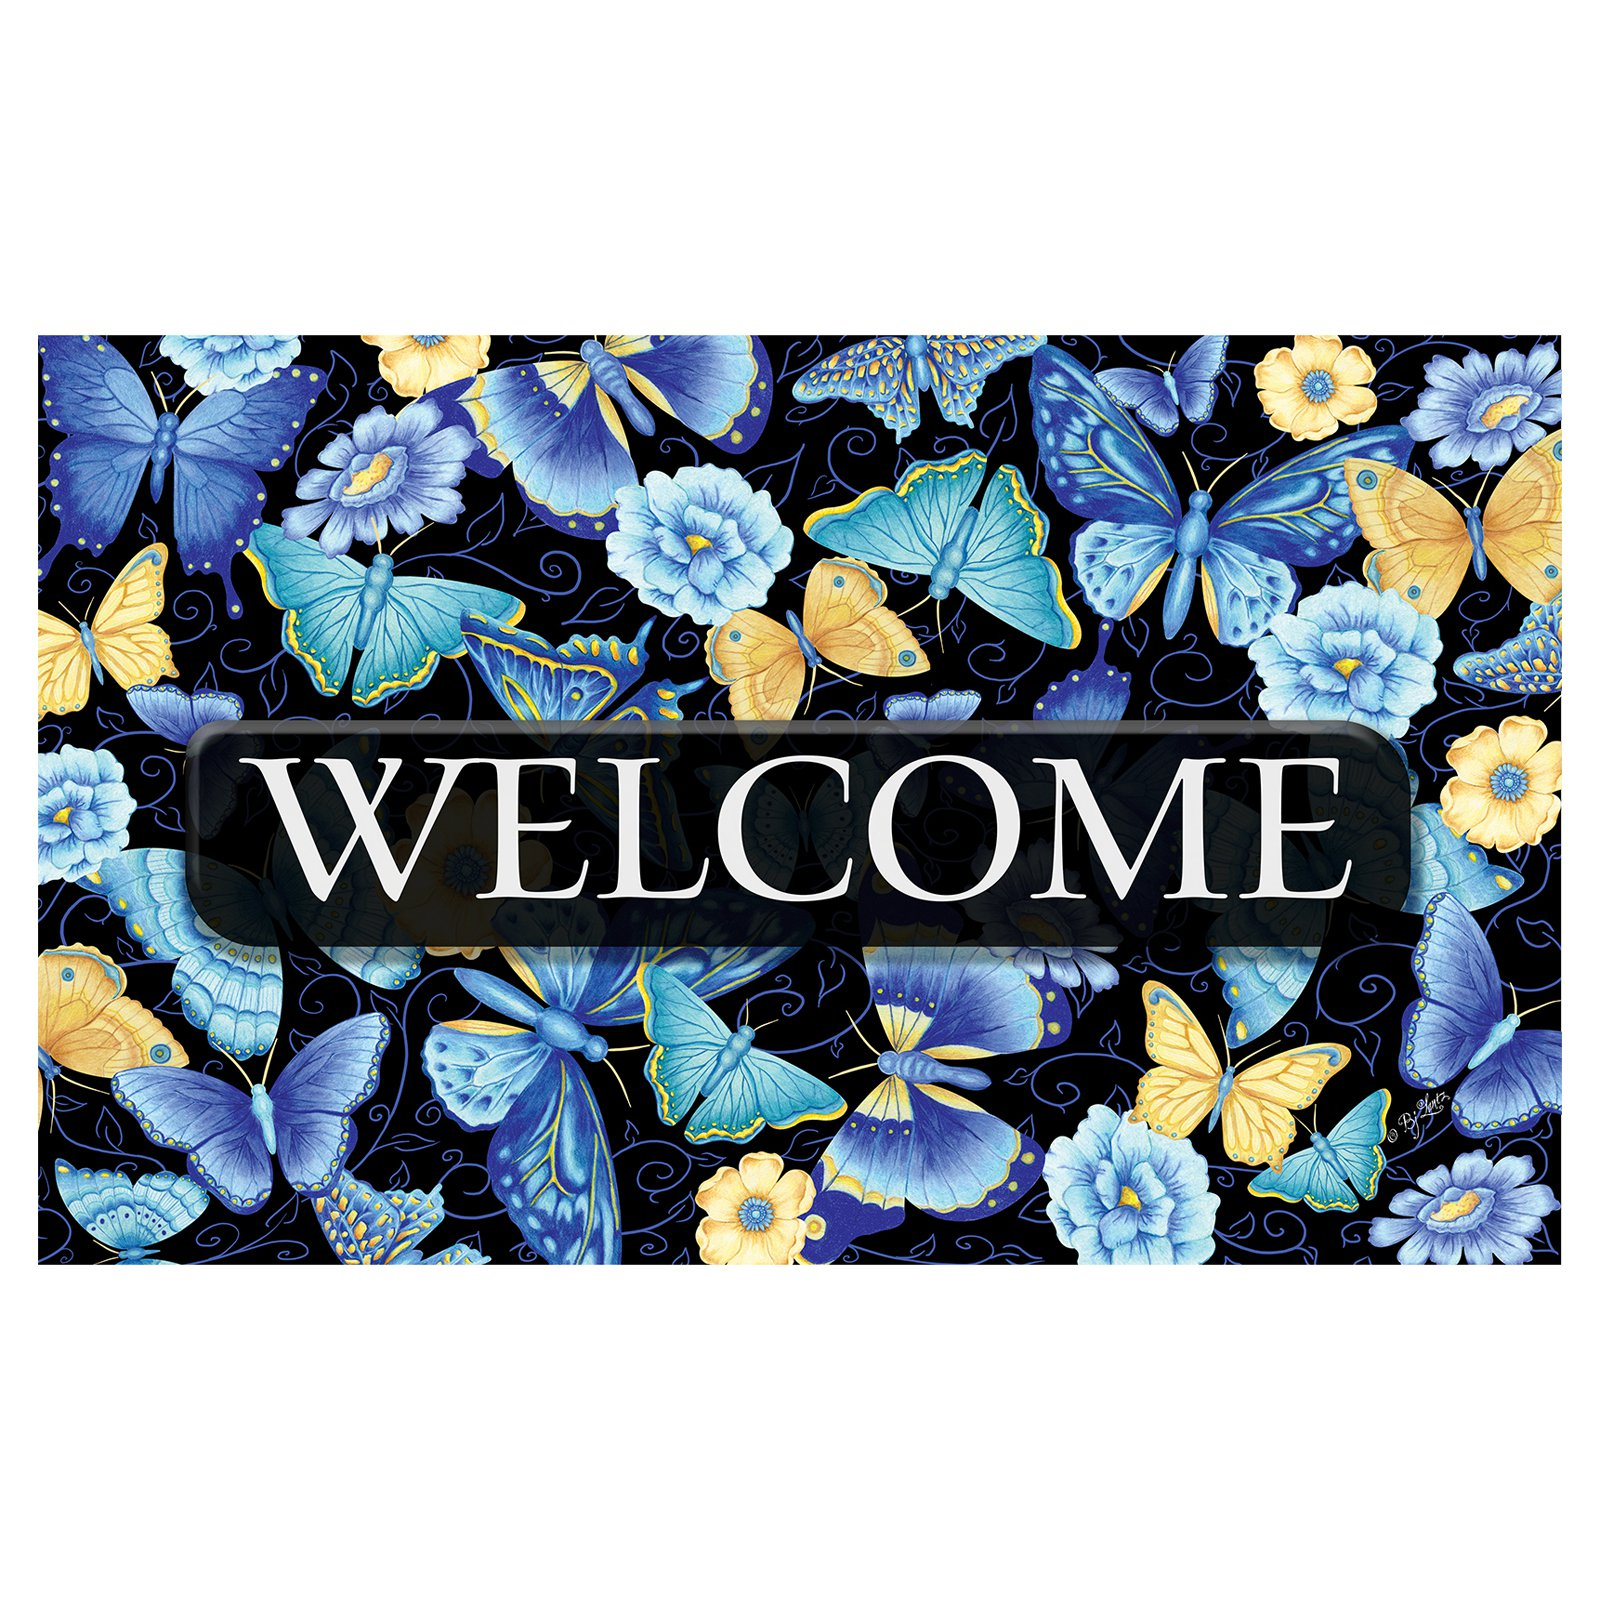 Toland Home Garden Blue Butterfly Welcome Doormat - Polyester / Rubber